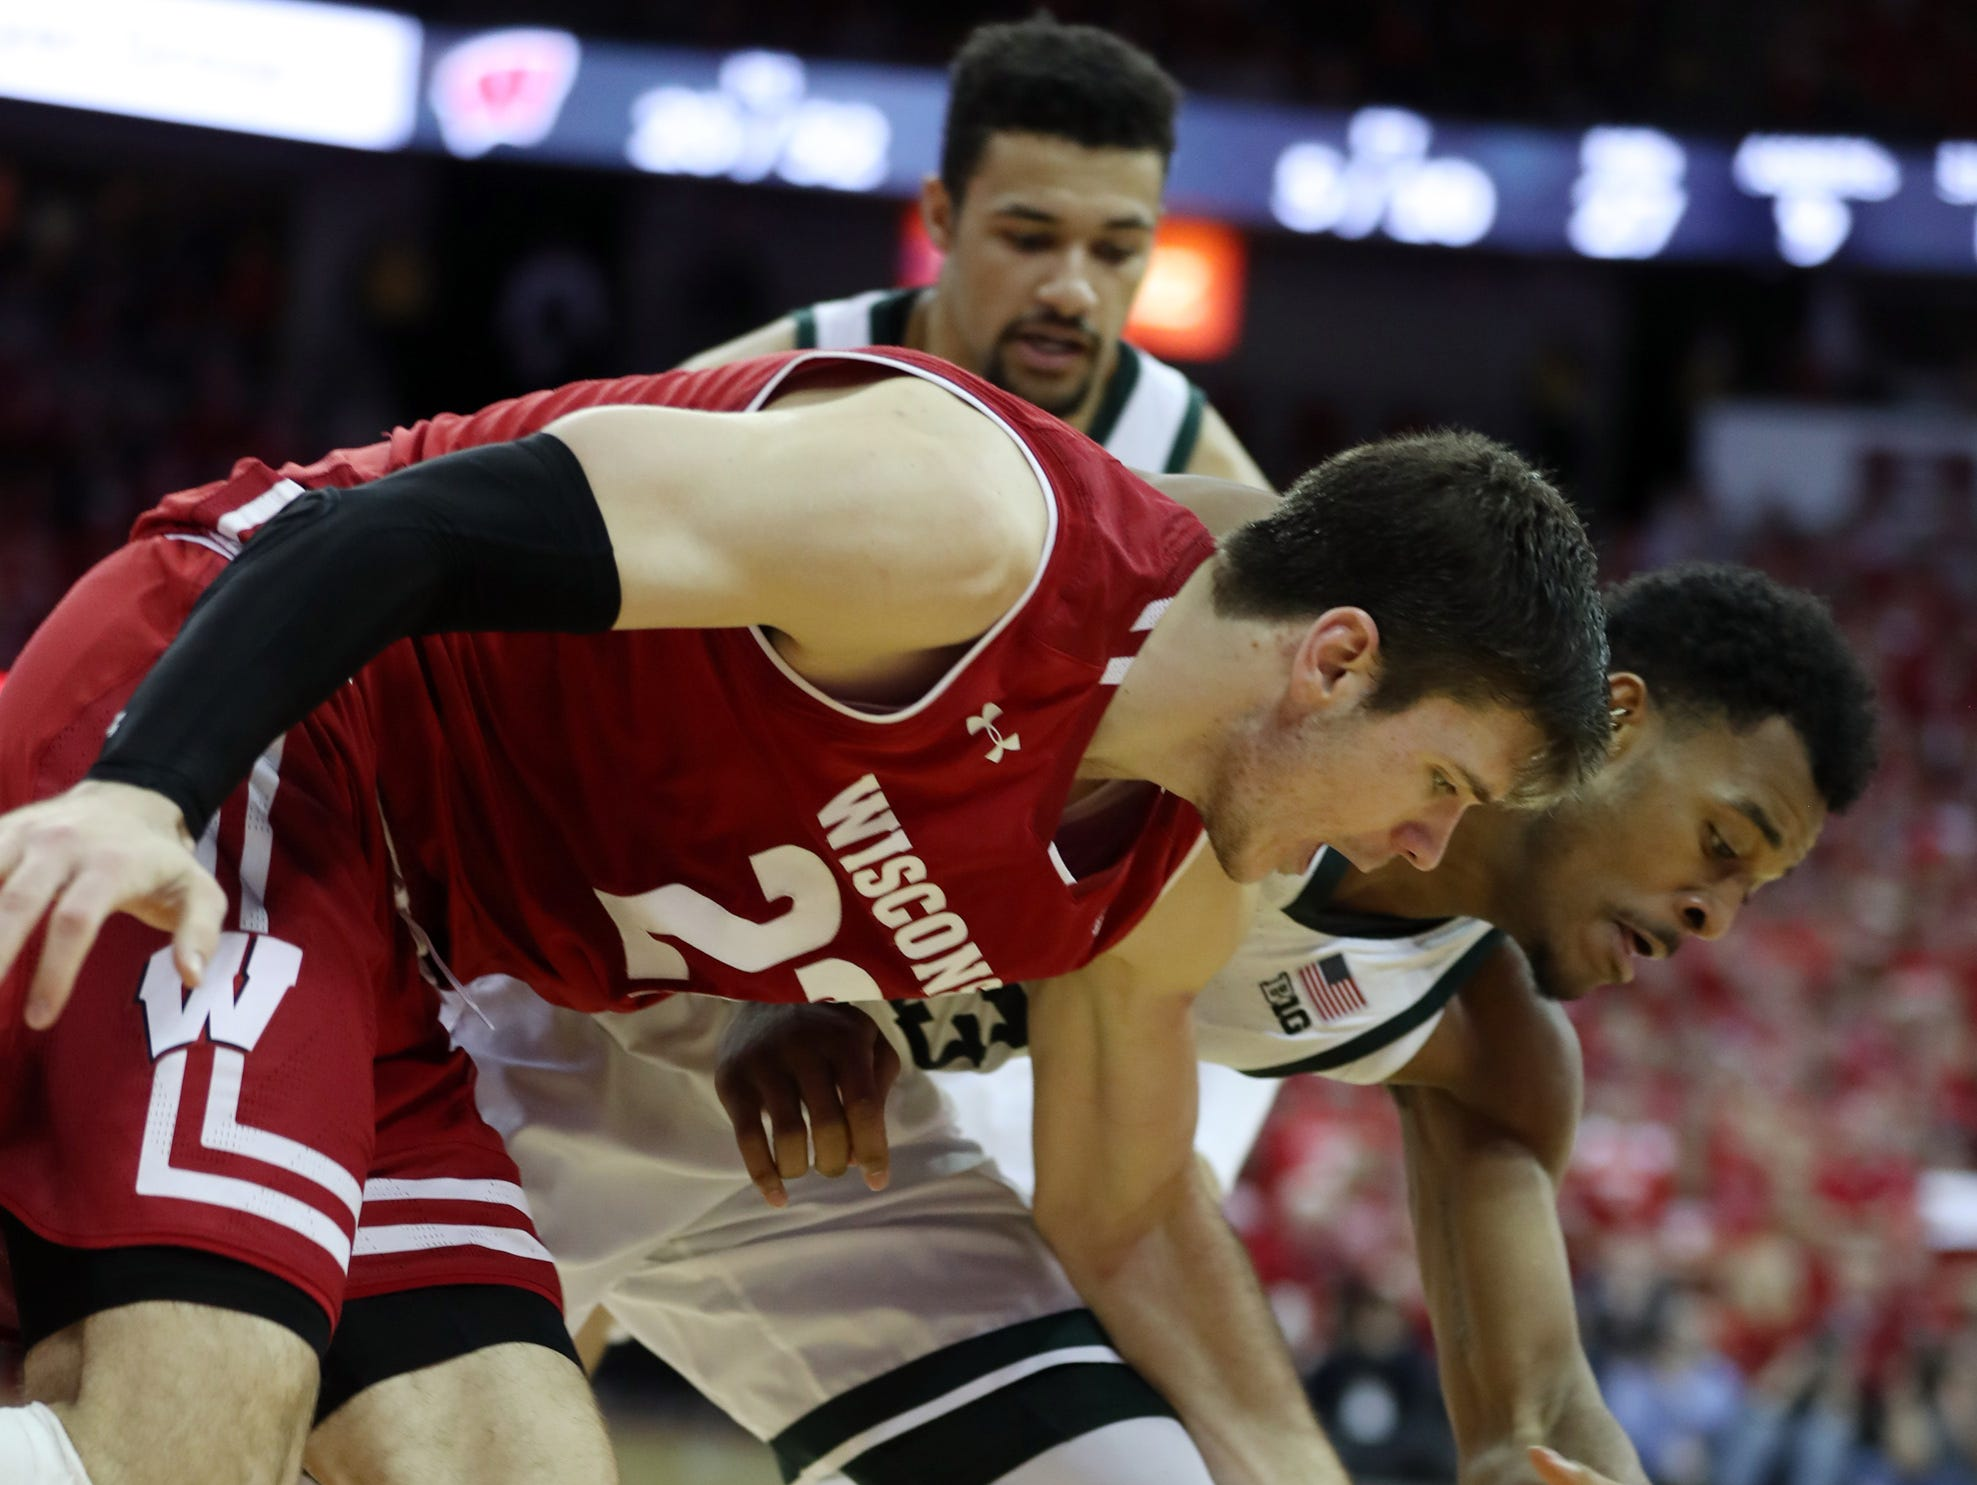 Wisconsin Badgers forward Ethan Happ (22) and Michigan State Spartans forward Kenny Goins (25) battle for a loose ball during the second half at the Kohl Center.